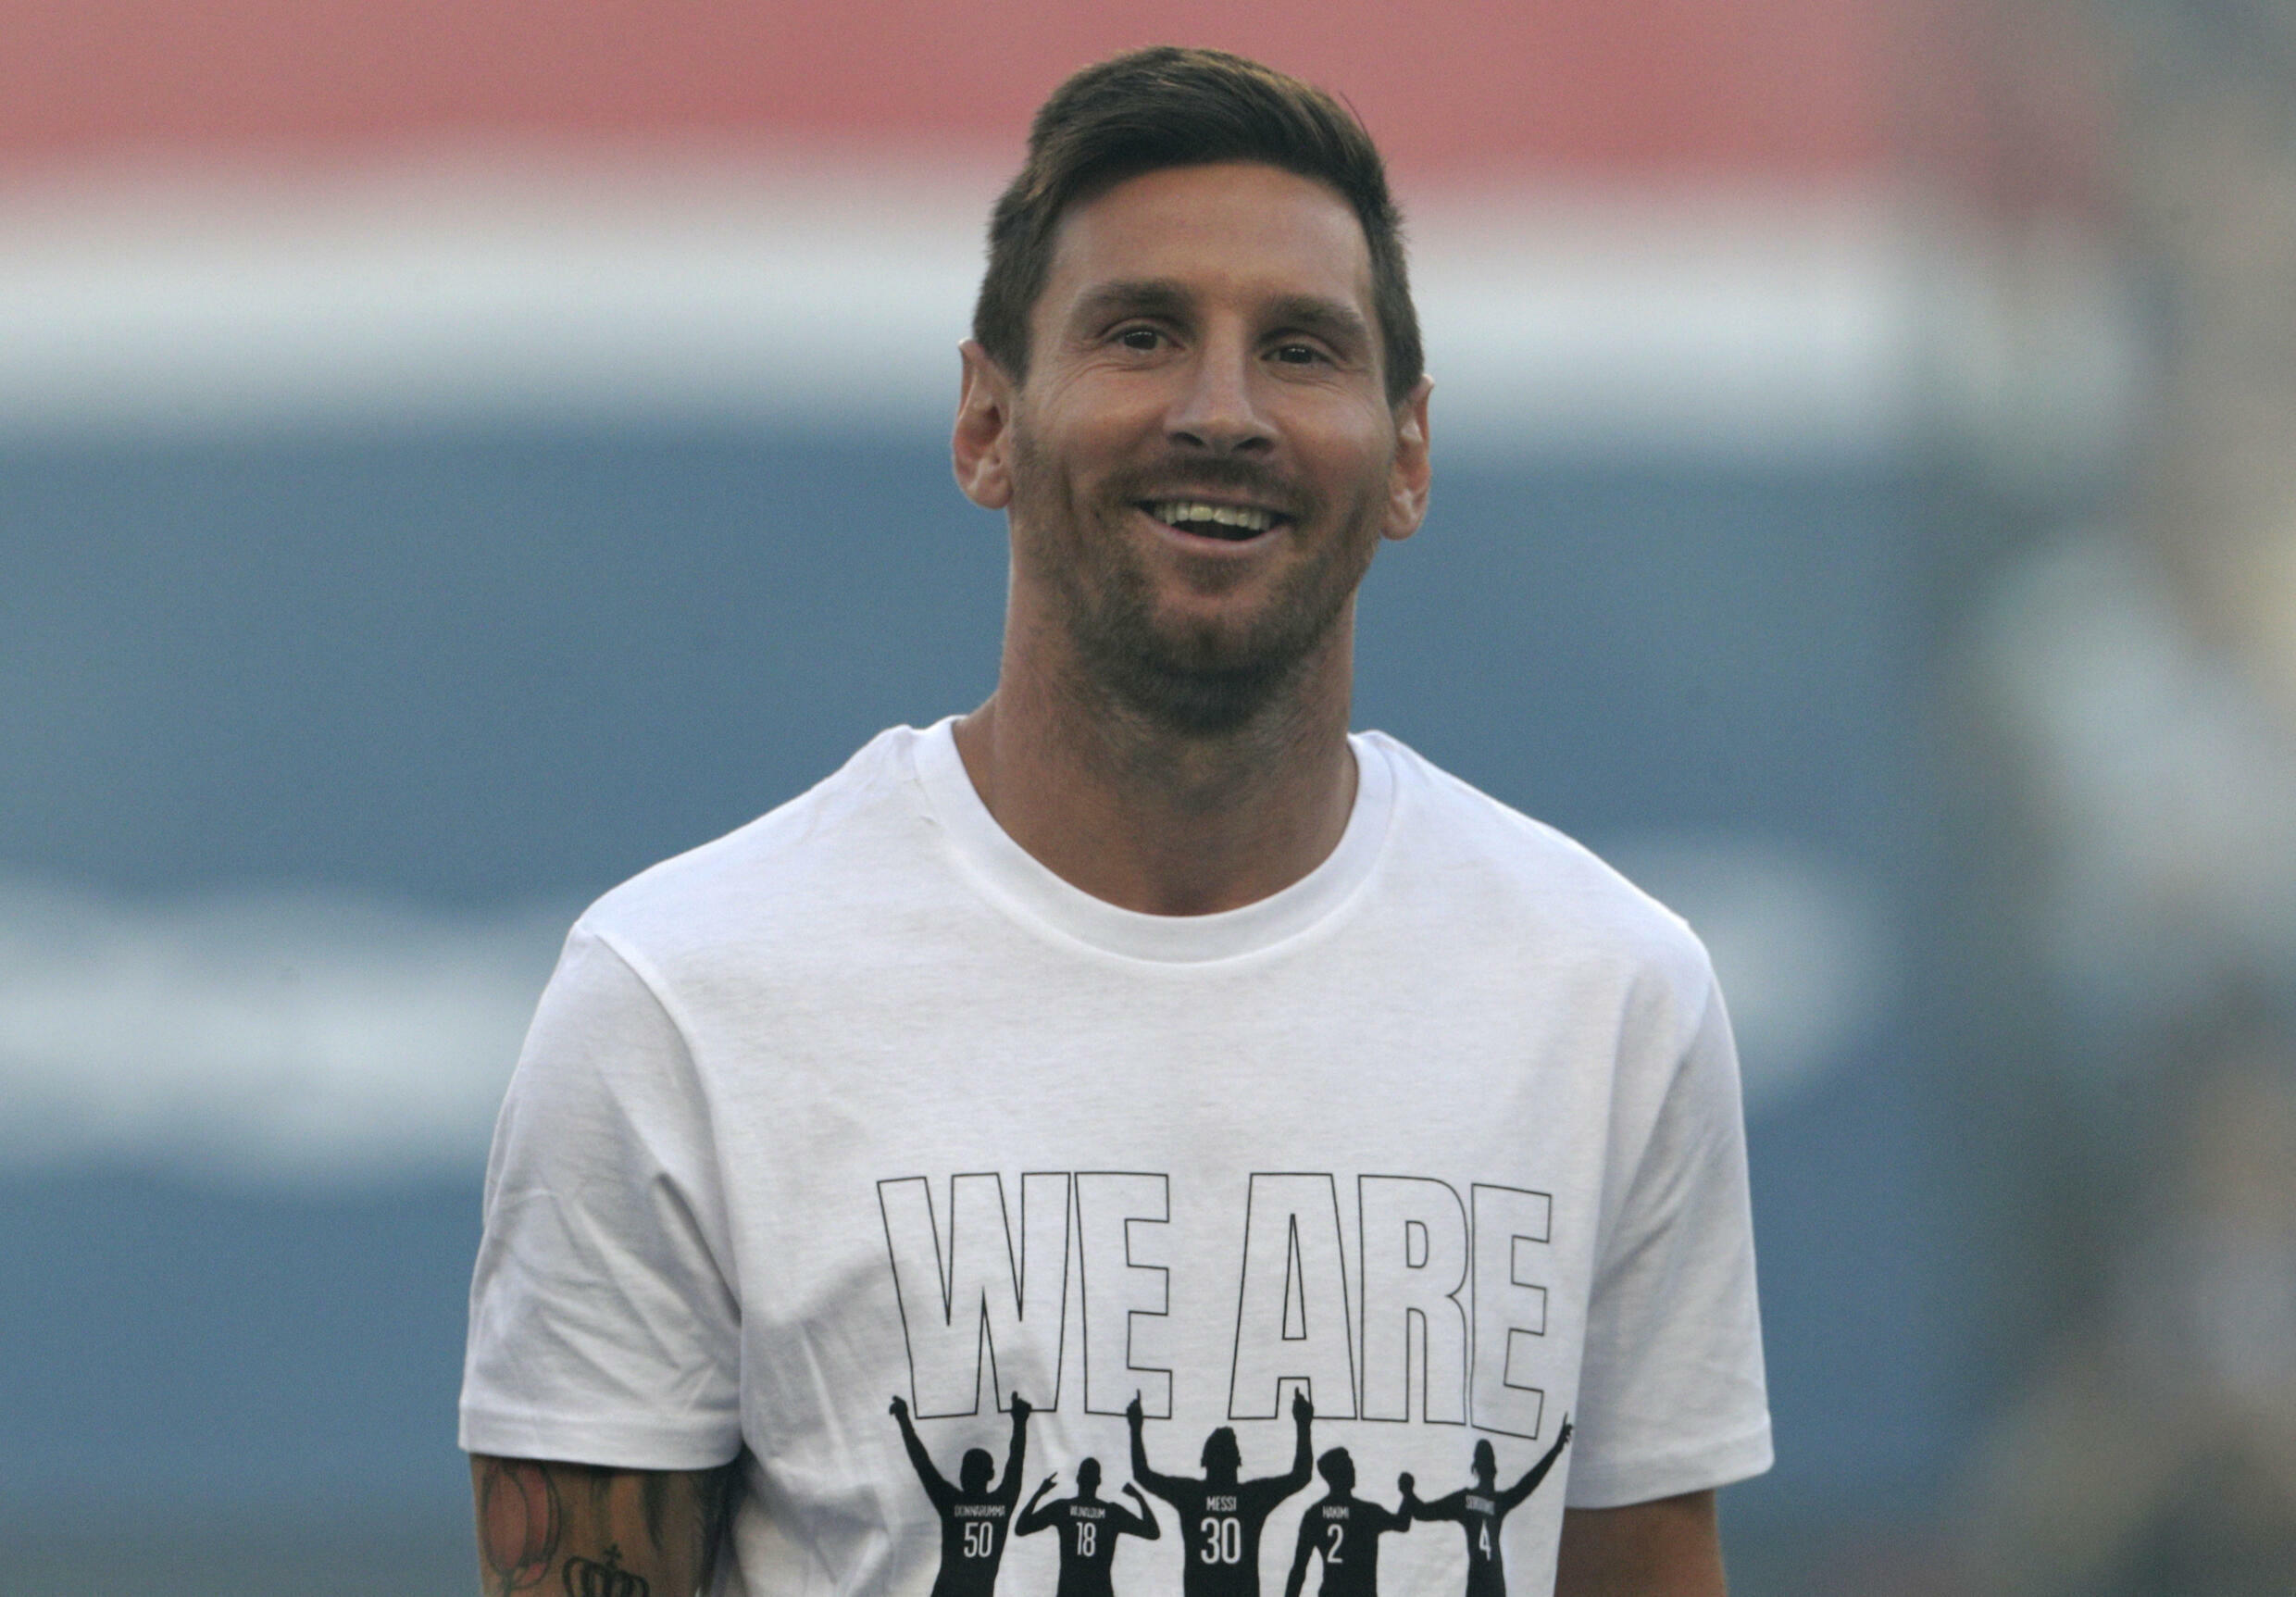 Lionel Messi will earn a reported 35 million euros a year at Paris Saint-Germain